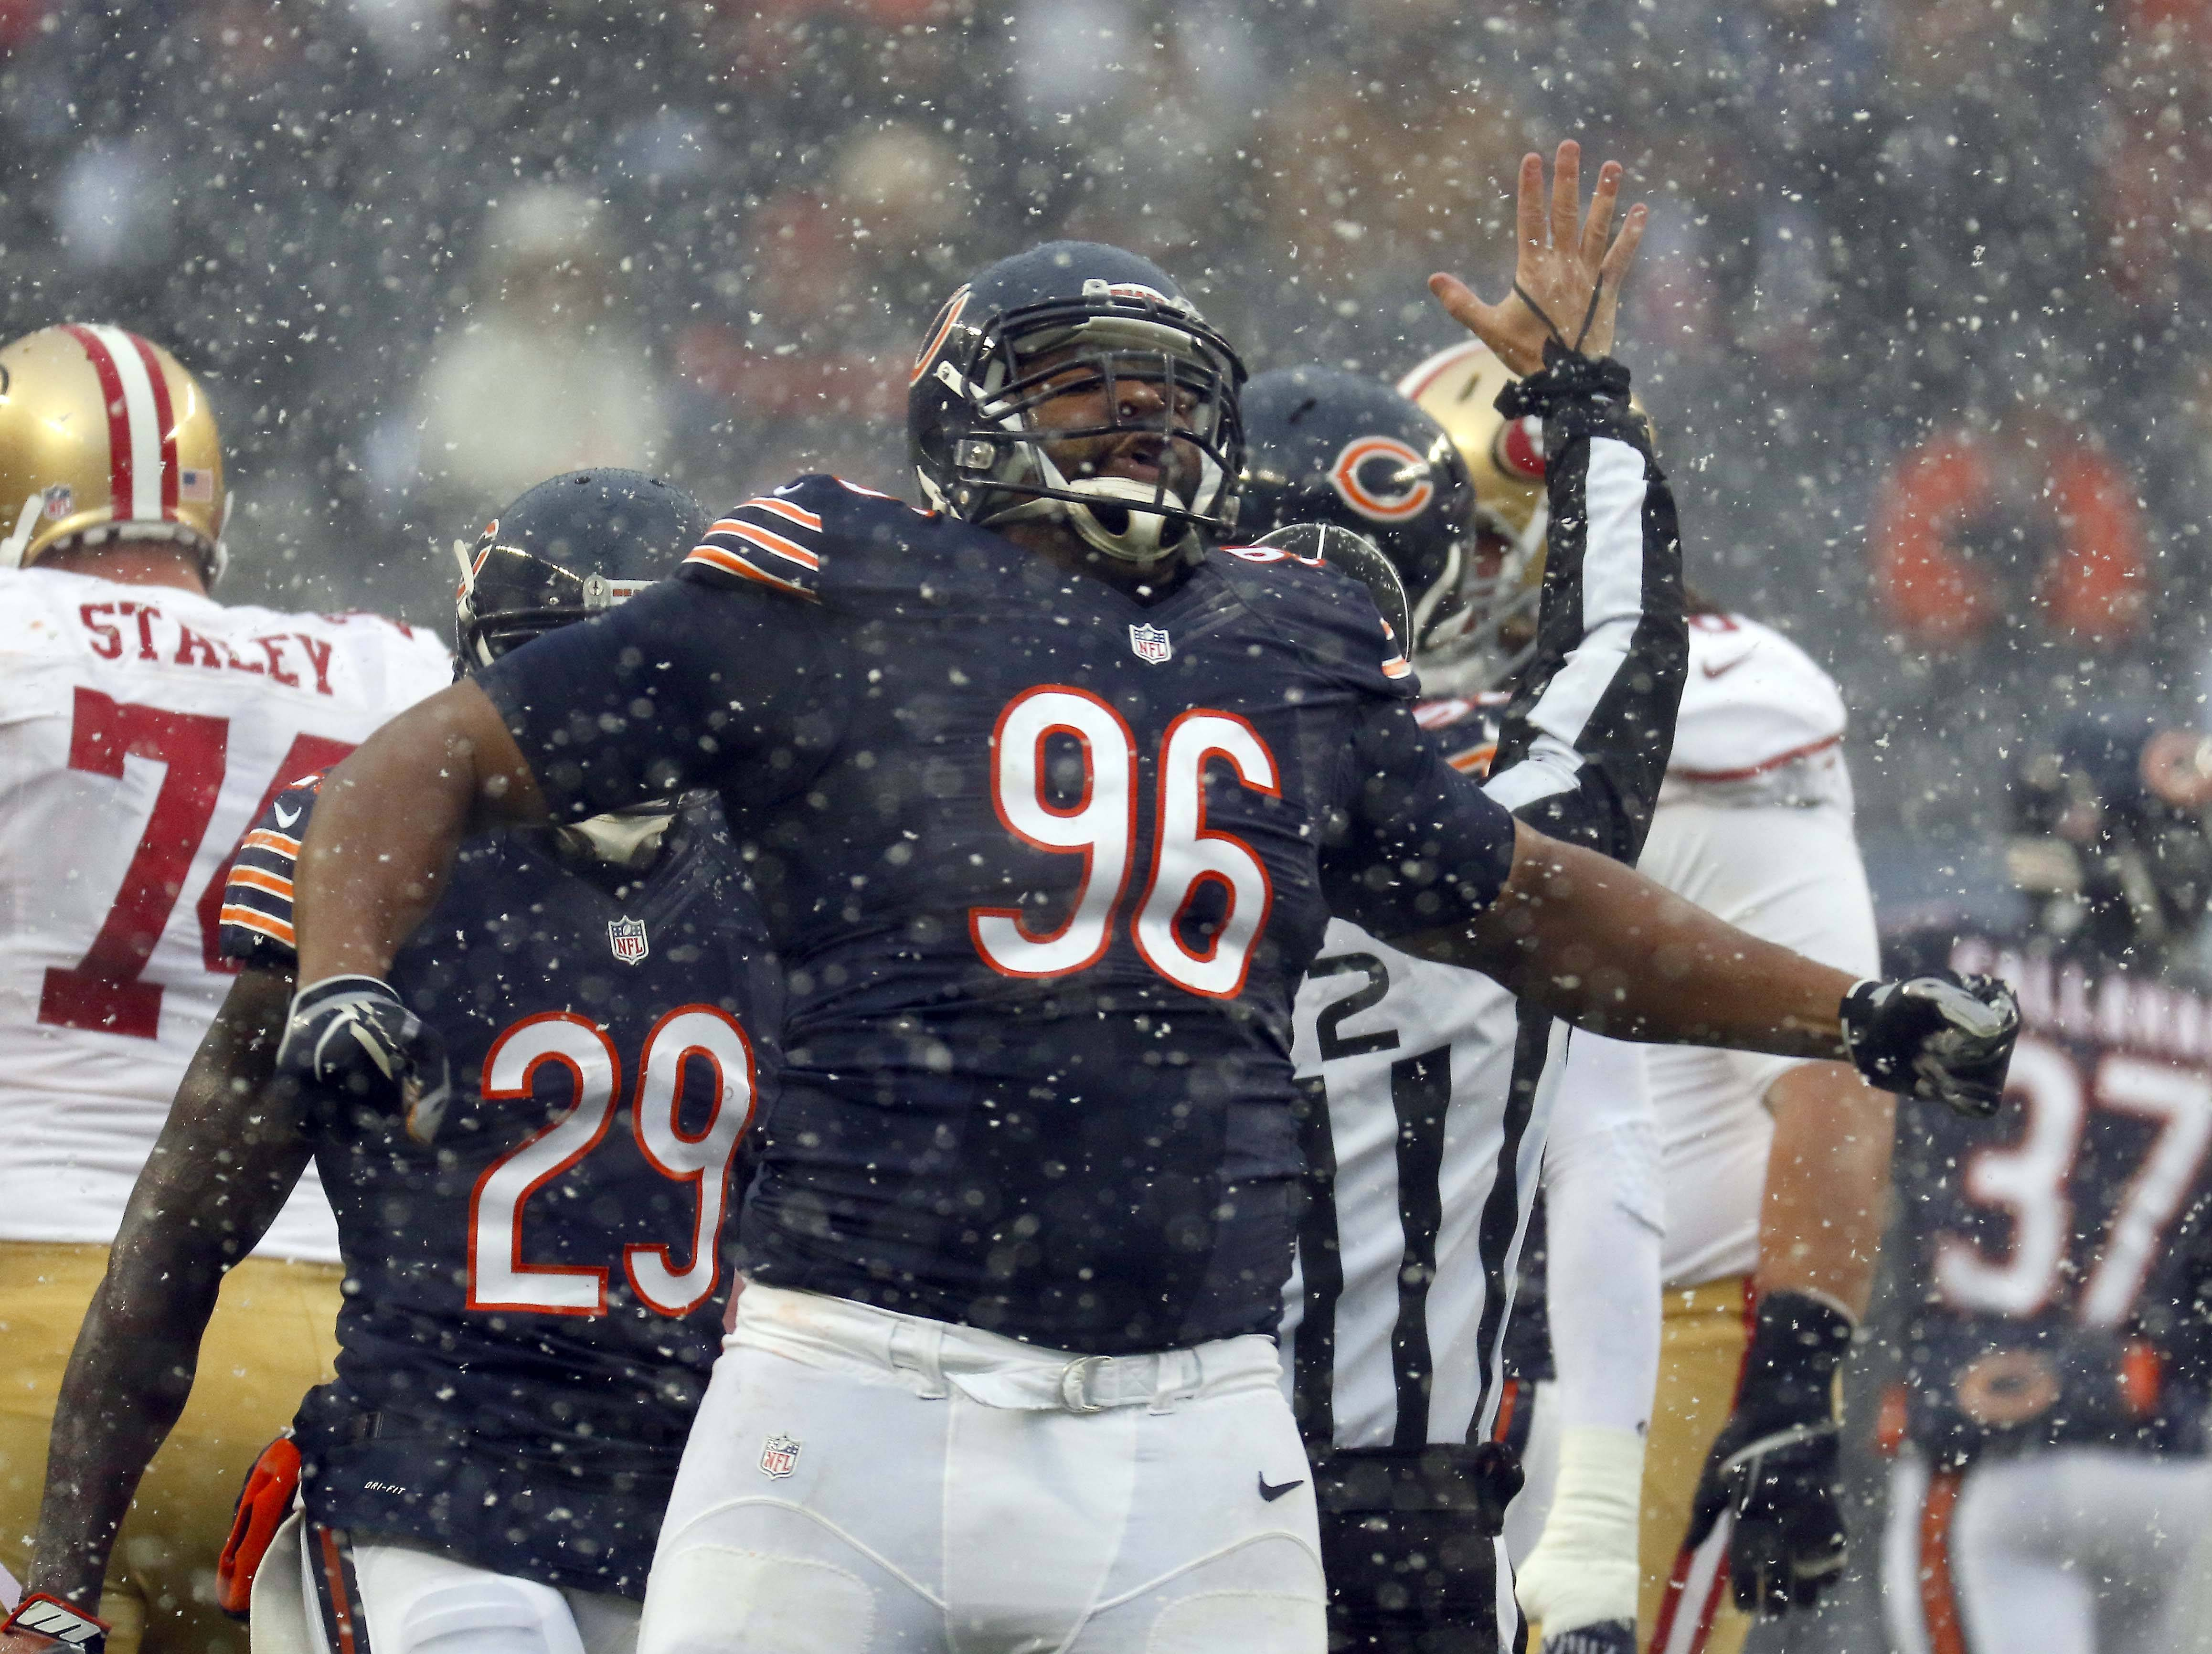 According to multiple reports, the Bears and defensive lineman Akiem Hicks have agreed on a four-year, $48 million extension that includes $30 million guaranteed.